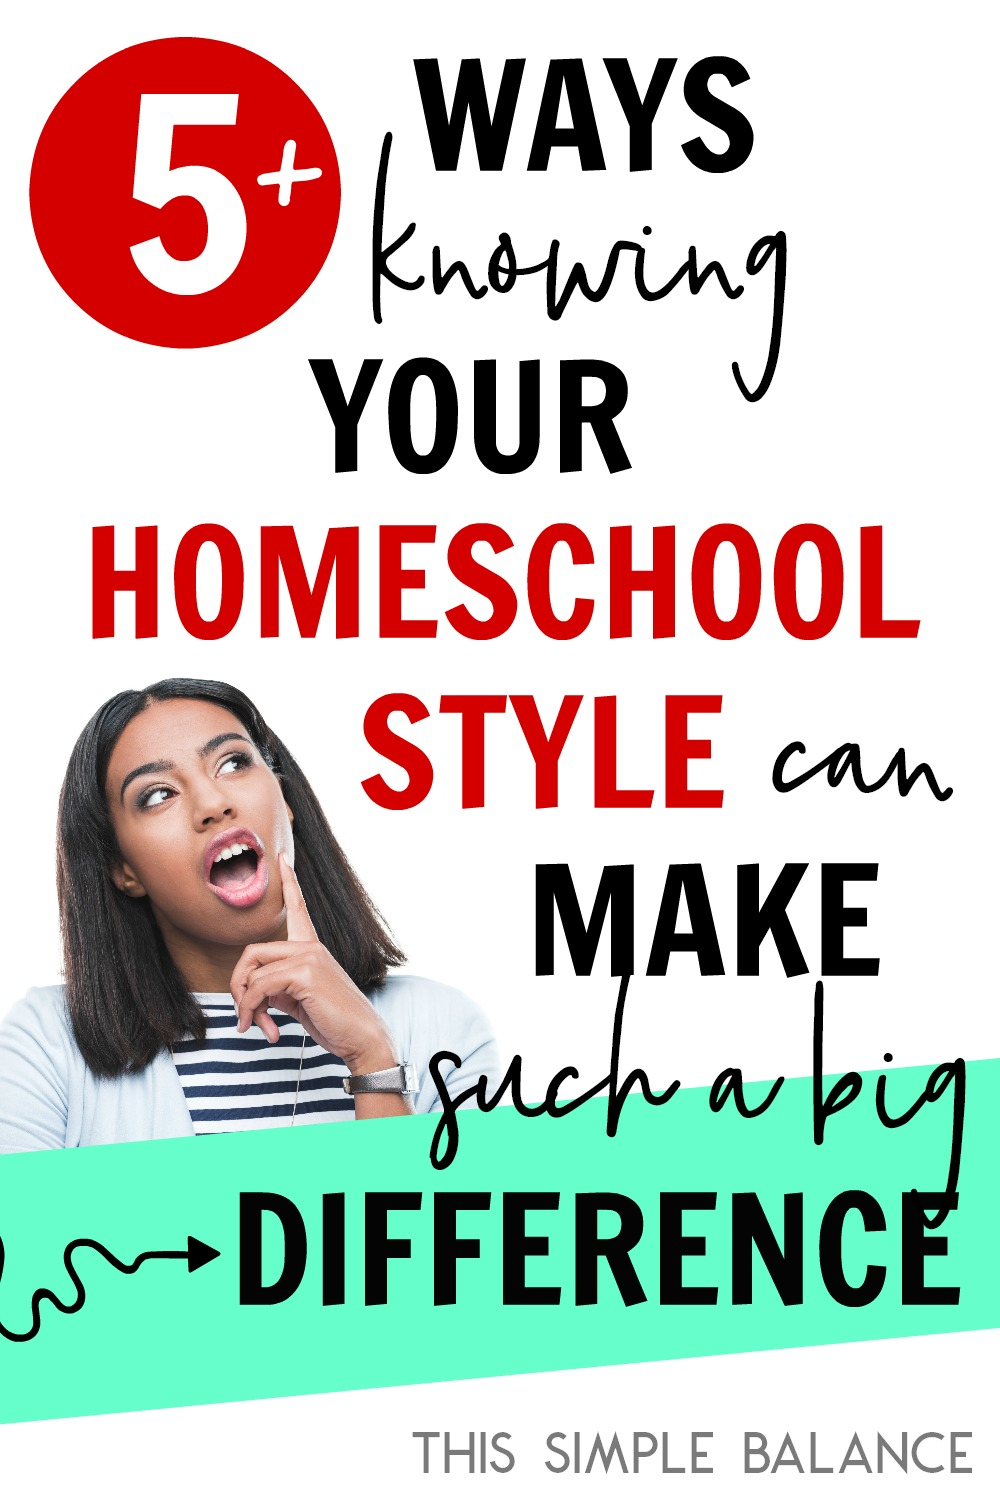 Knowing your homeschool style isn't that important for some homeschool moms. For others, knowing your homeschool style can make all the difference.